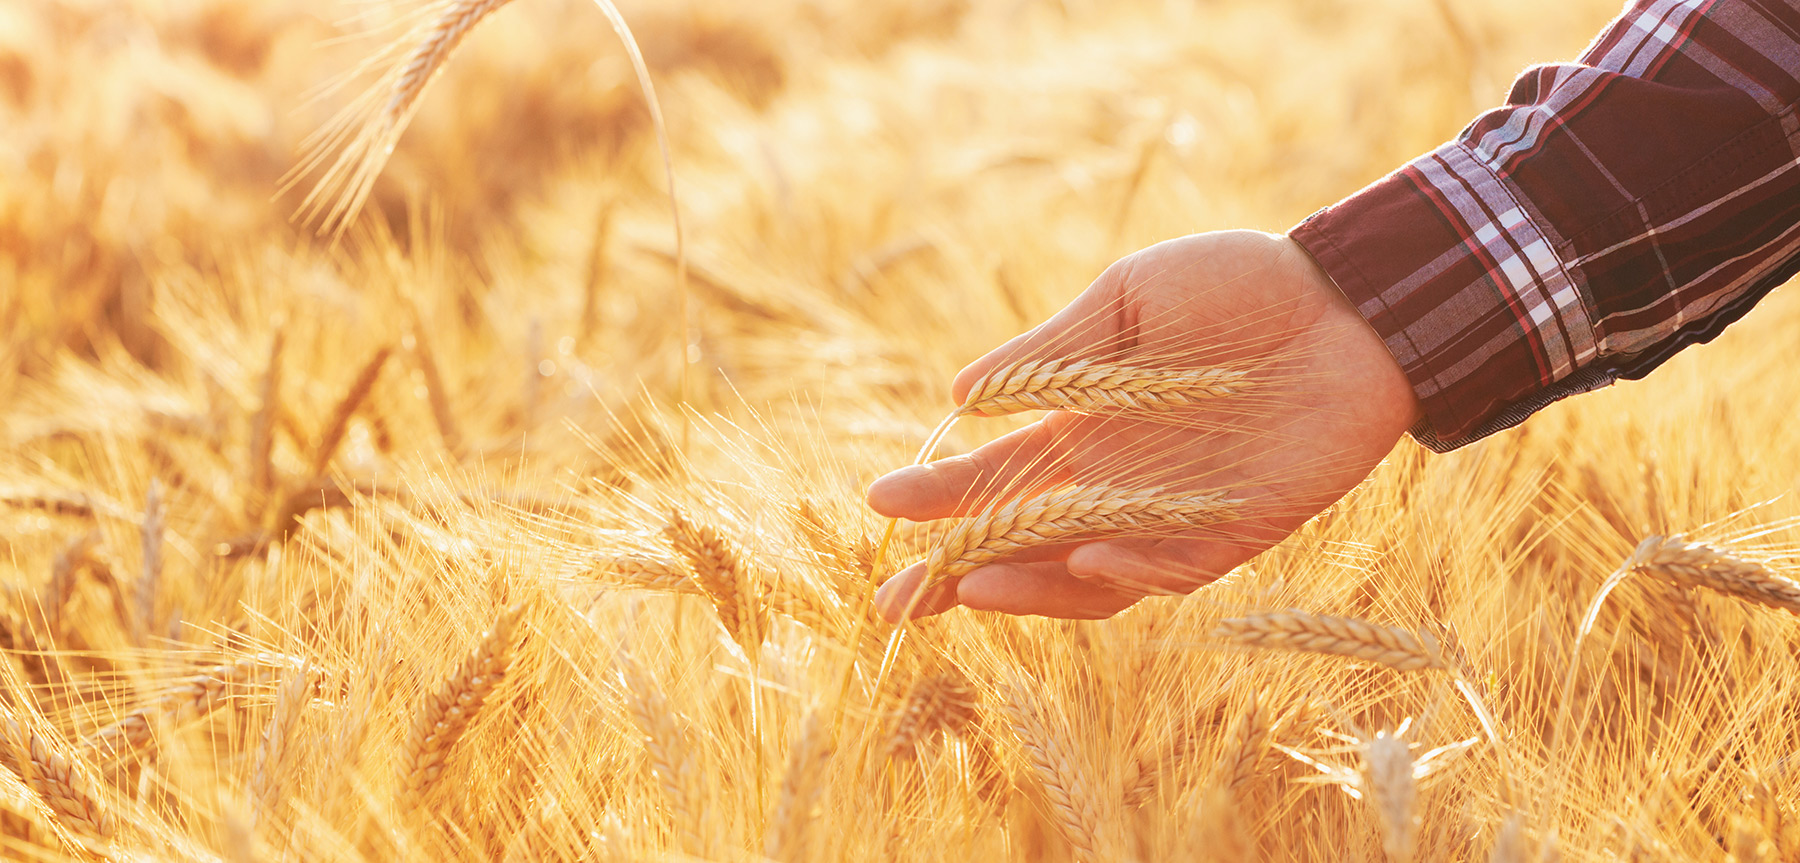 Man runs hand through wheat